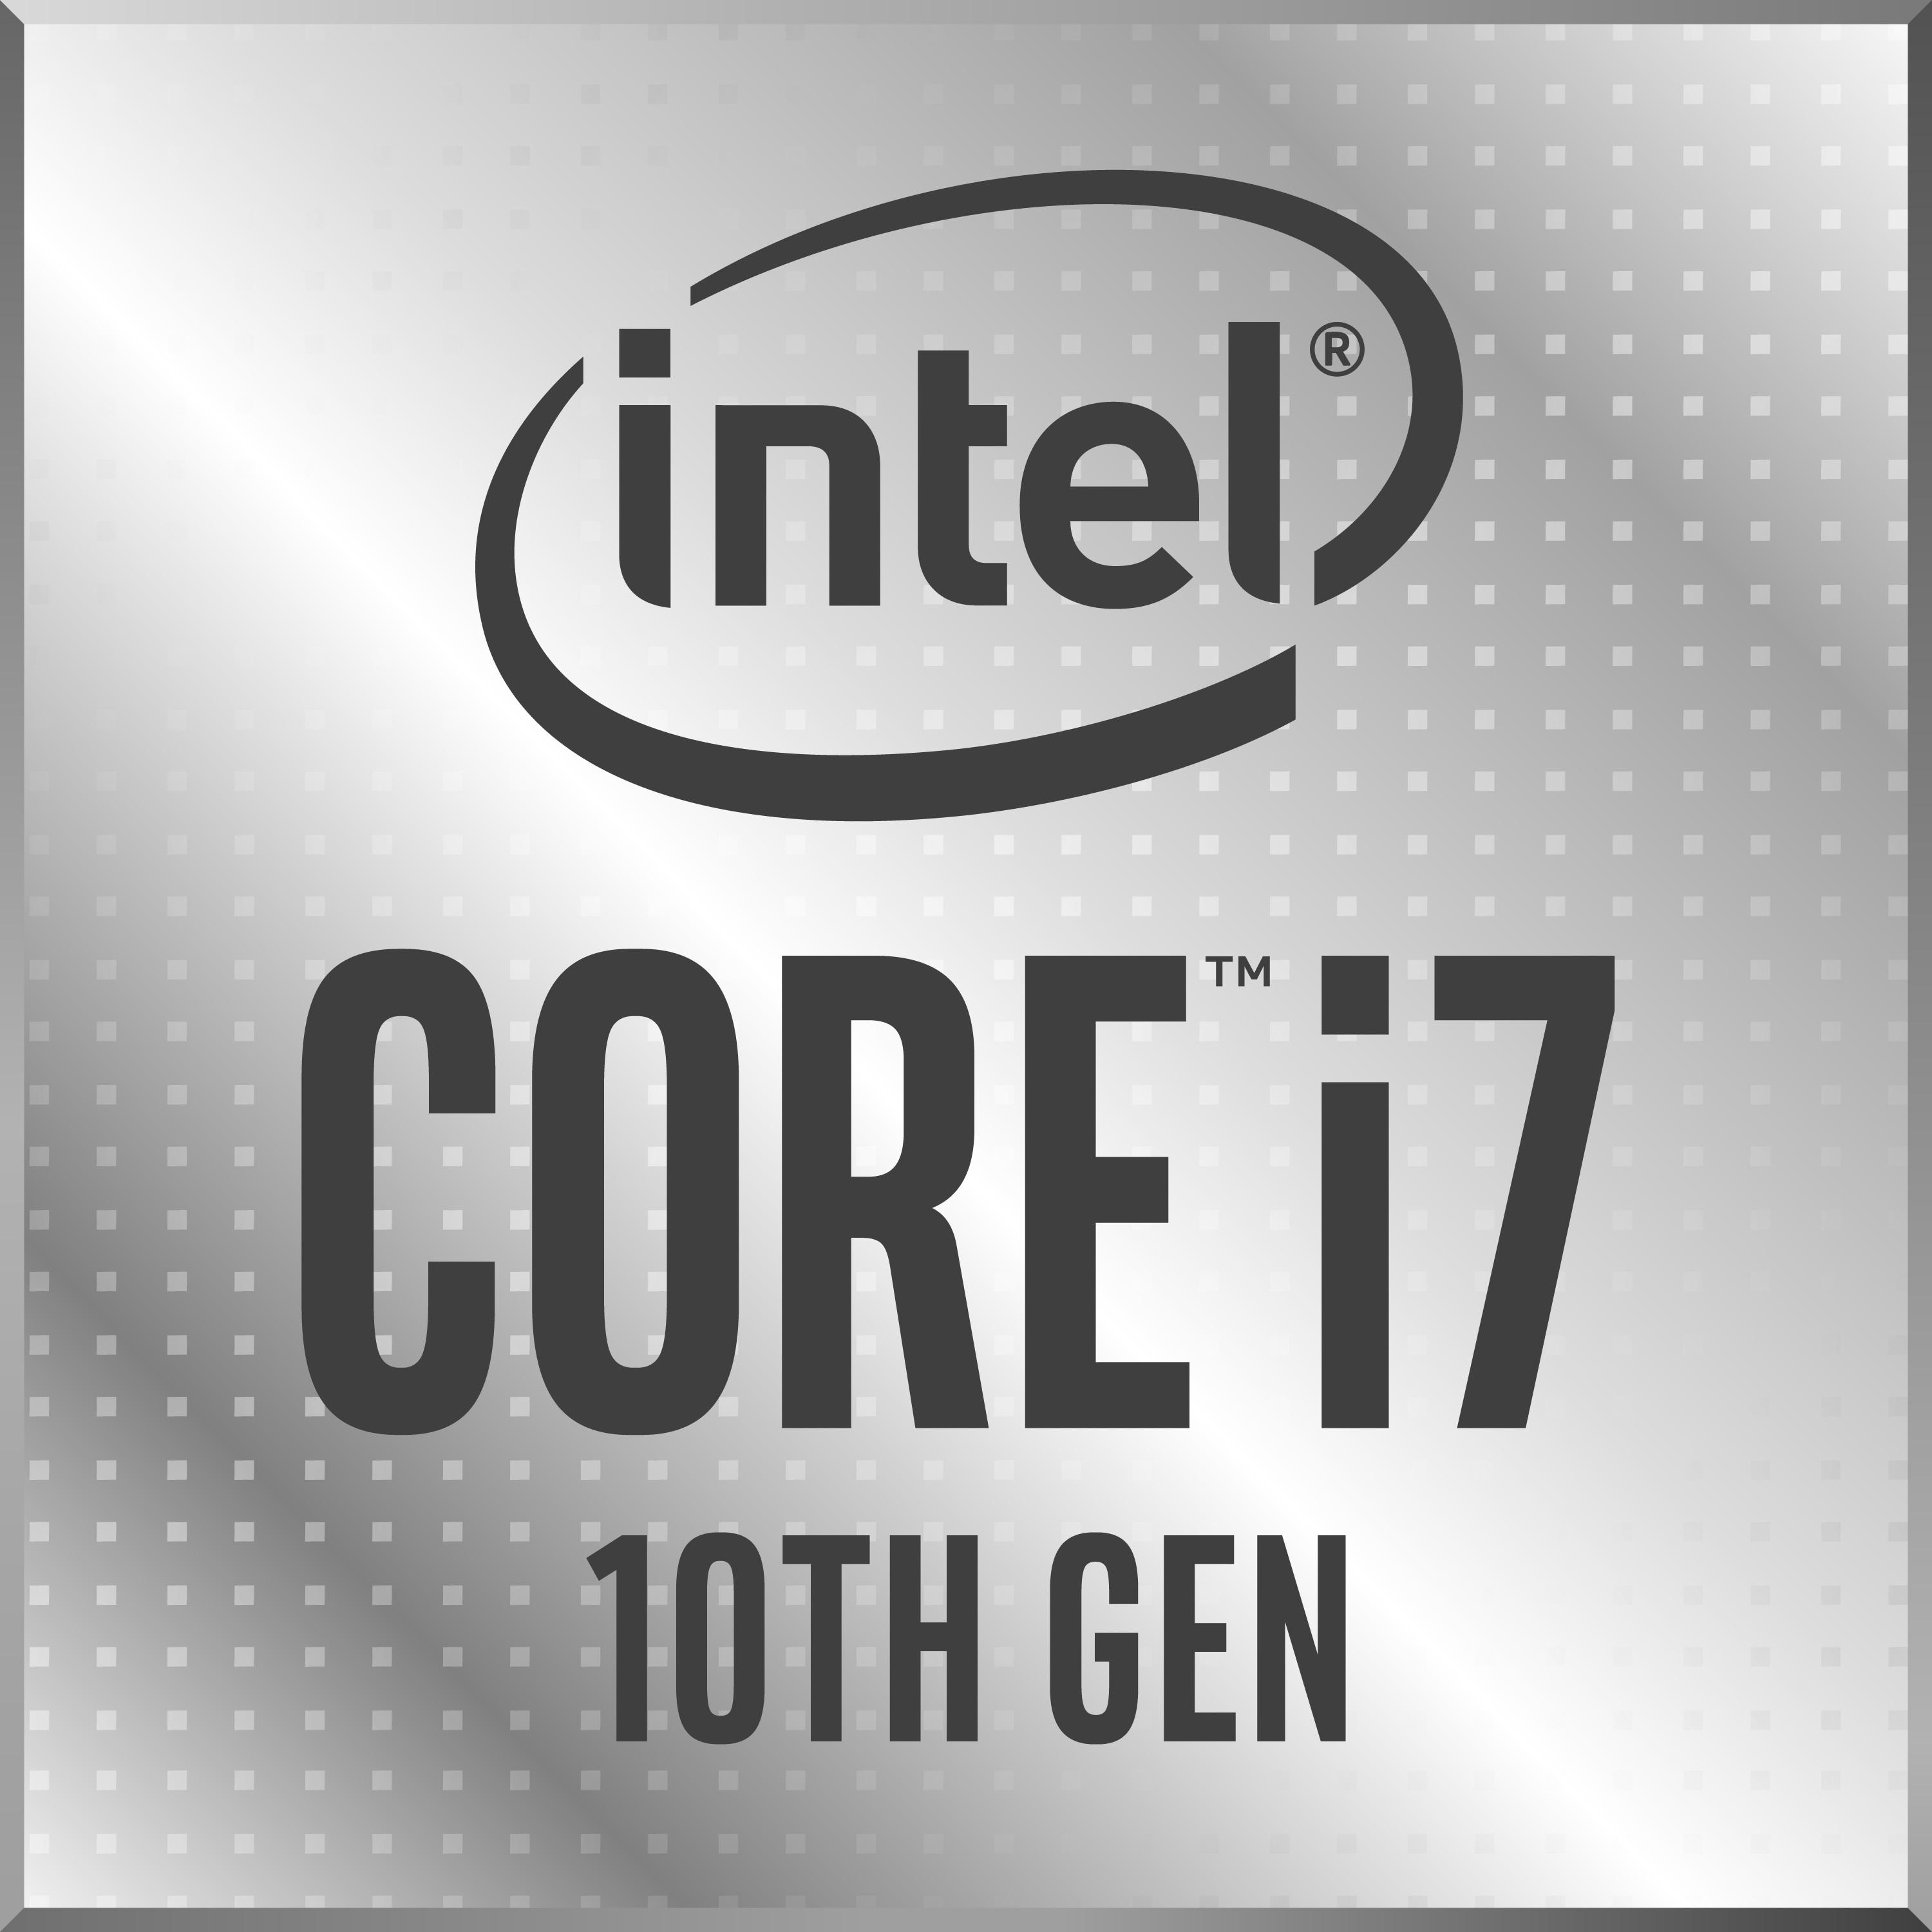 Intel-10th-Gen-Core-i7-badge